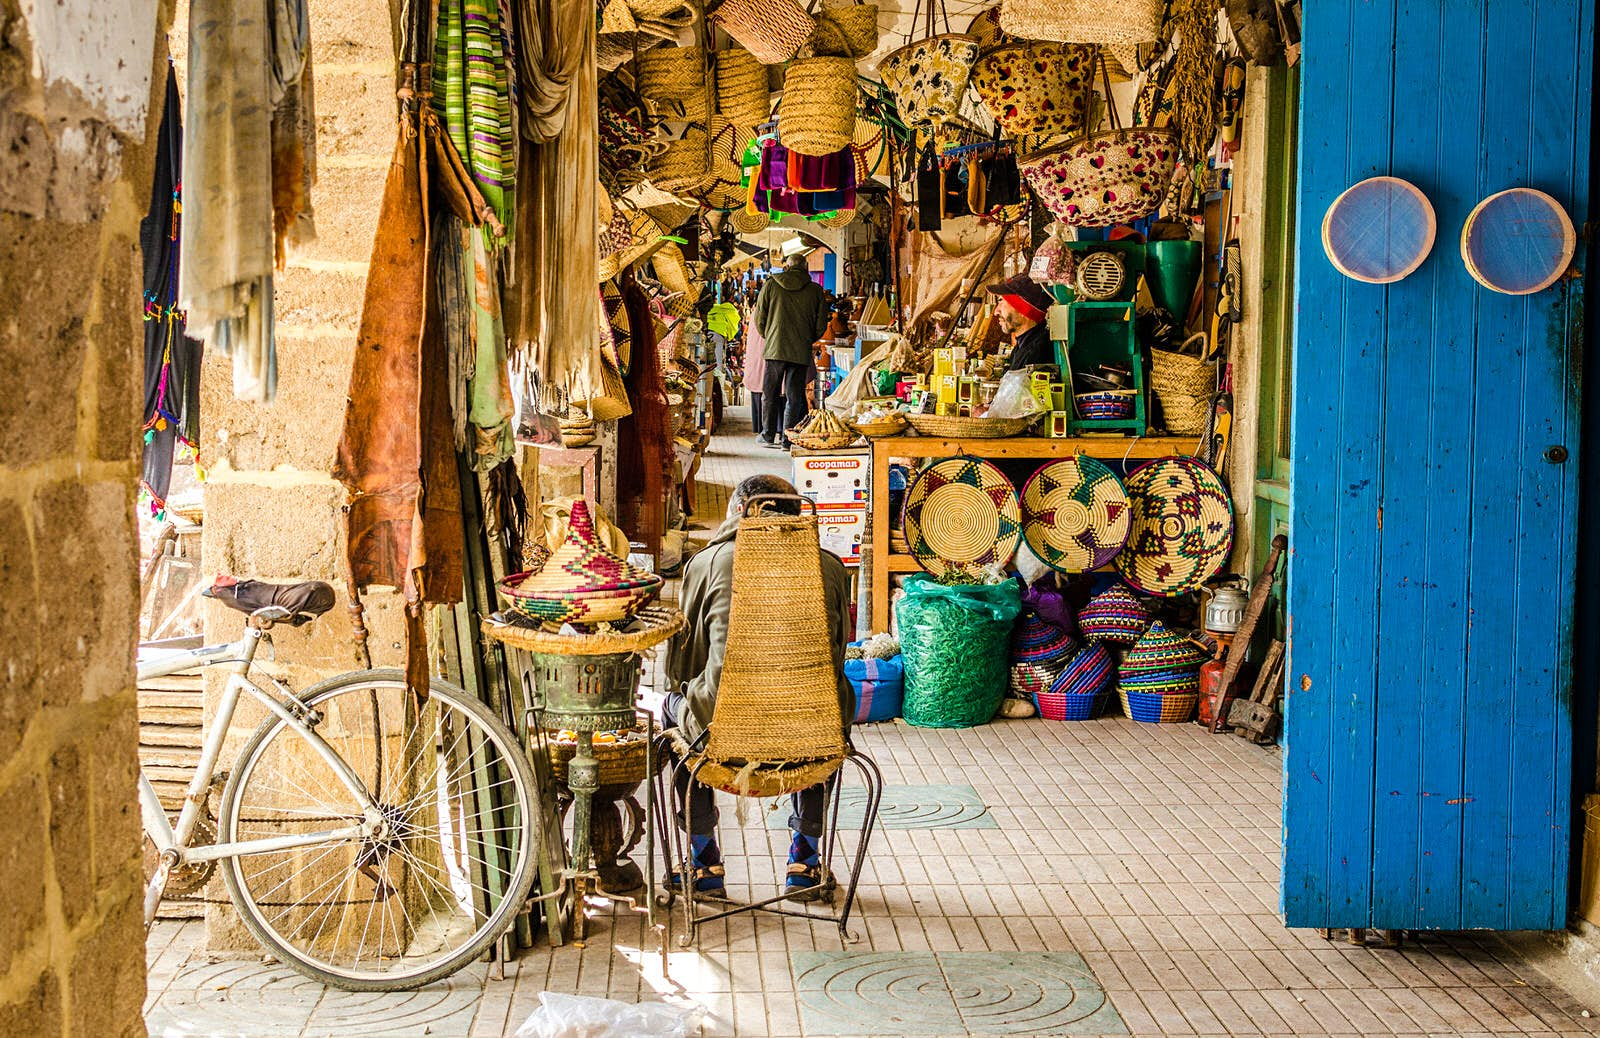 Handicrafts shop, Essaouira, Morocco. Image by Federica Gentile / Getty Images